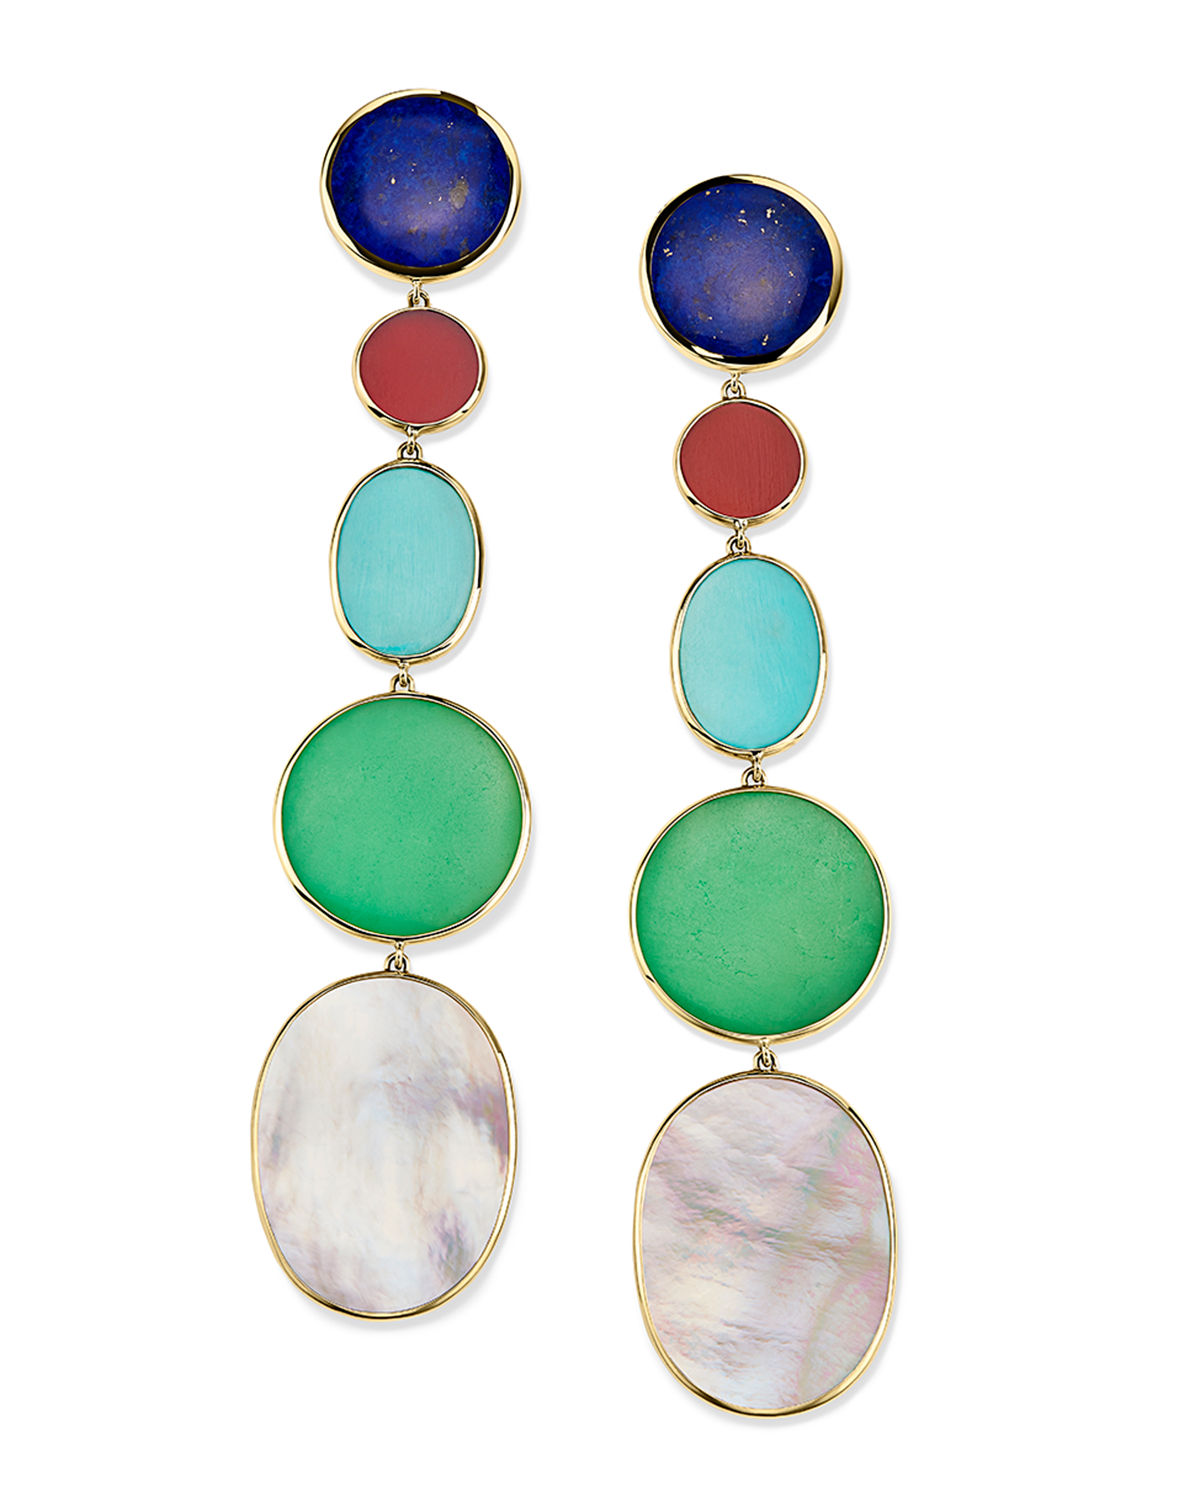 Ippolita Jewelry 18K POLISHED ROCK CANDY LONG LINEAR EARRINGS IN VIAREGGIO